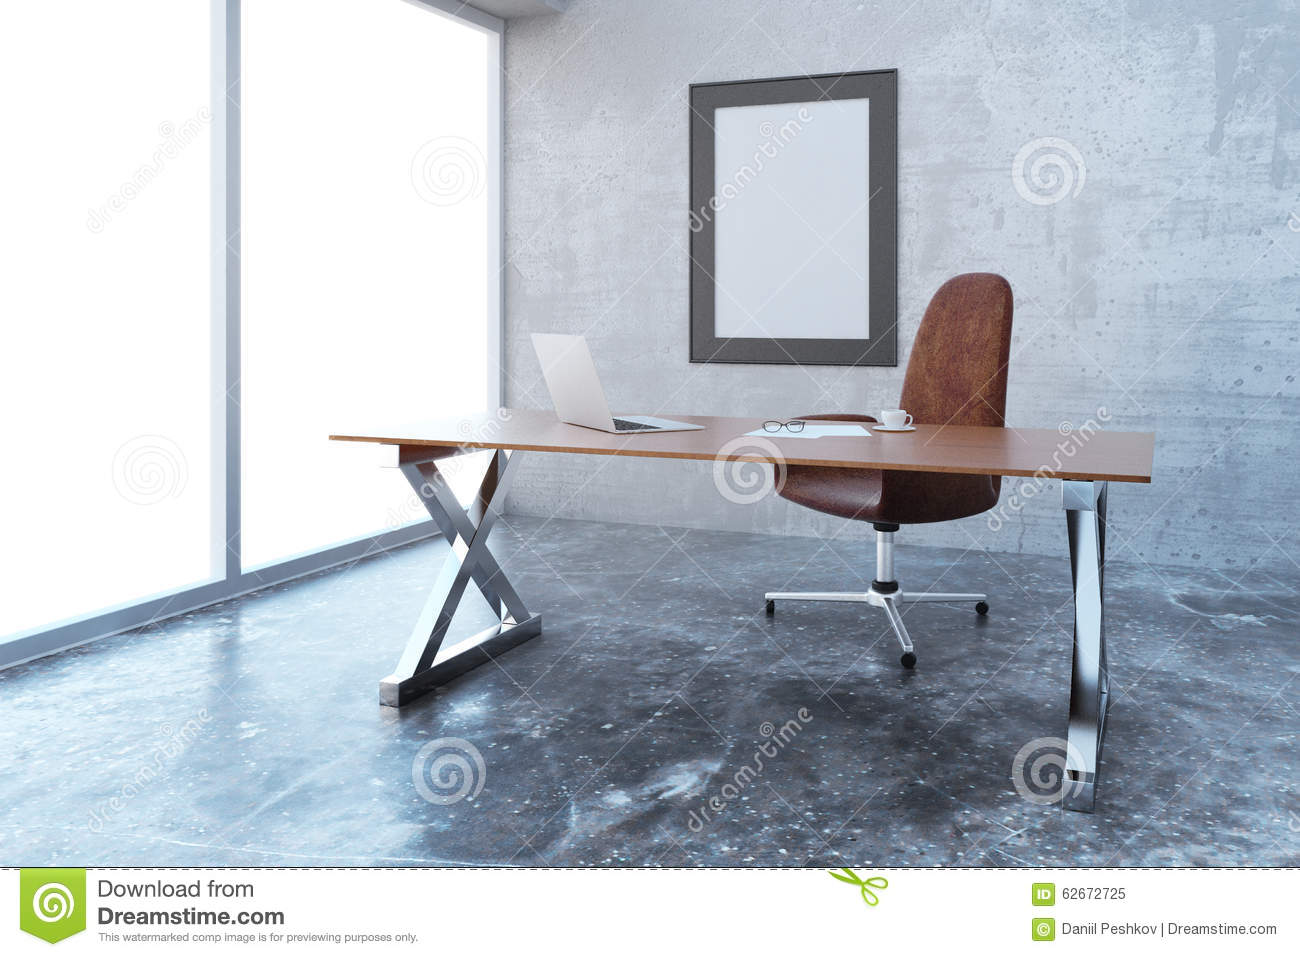 loft office furniture. Blank Picture Frame In Modern Loft Style Office With Furniture, Furniture N